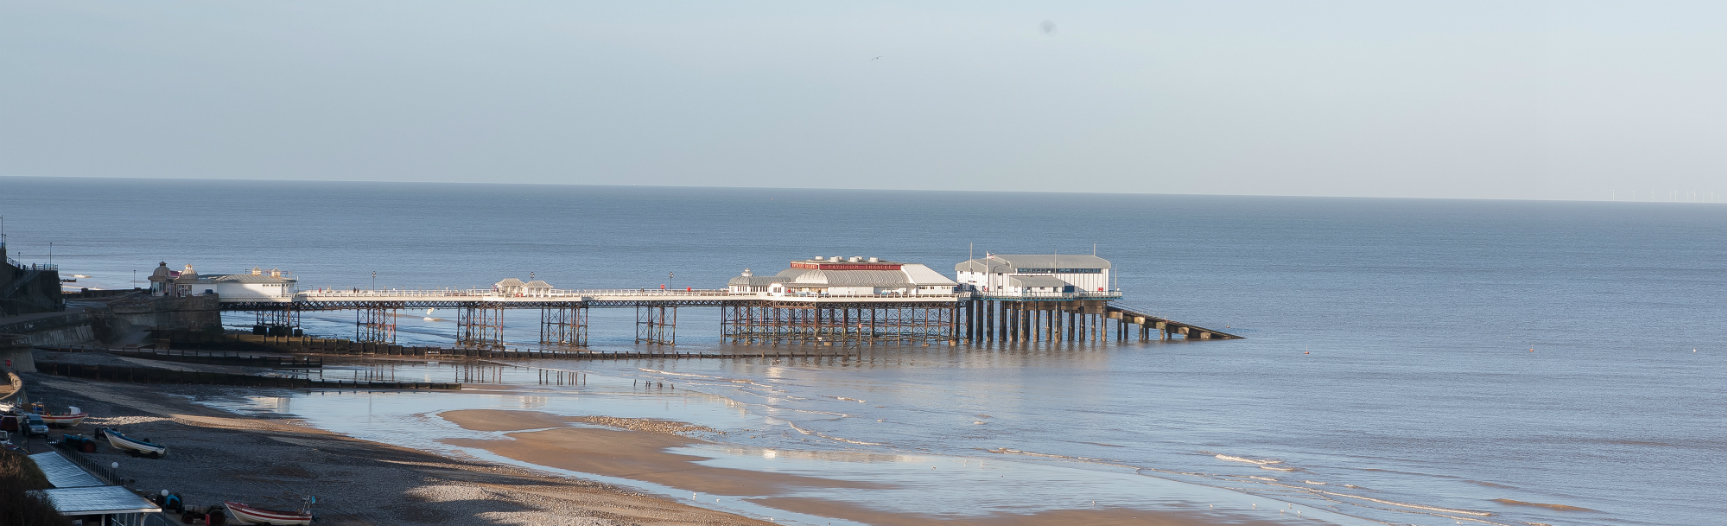 Historic Cromer Pier, home to Europe's only 'End-of-the-Pier' show